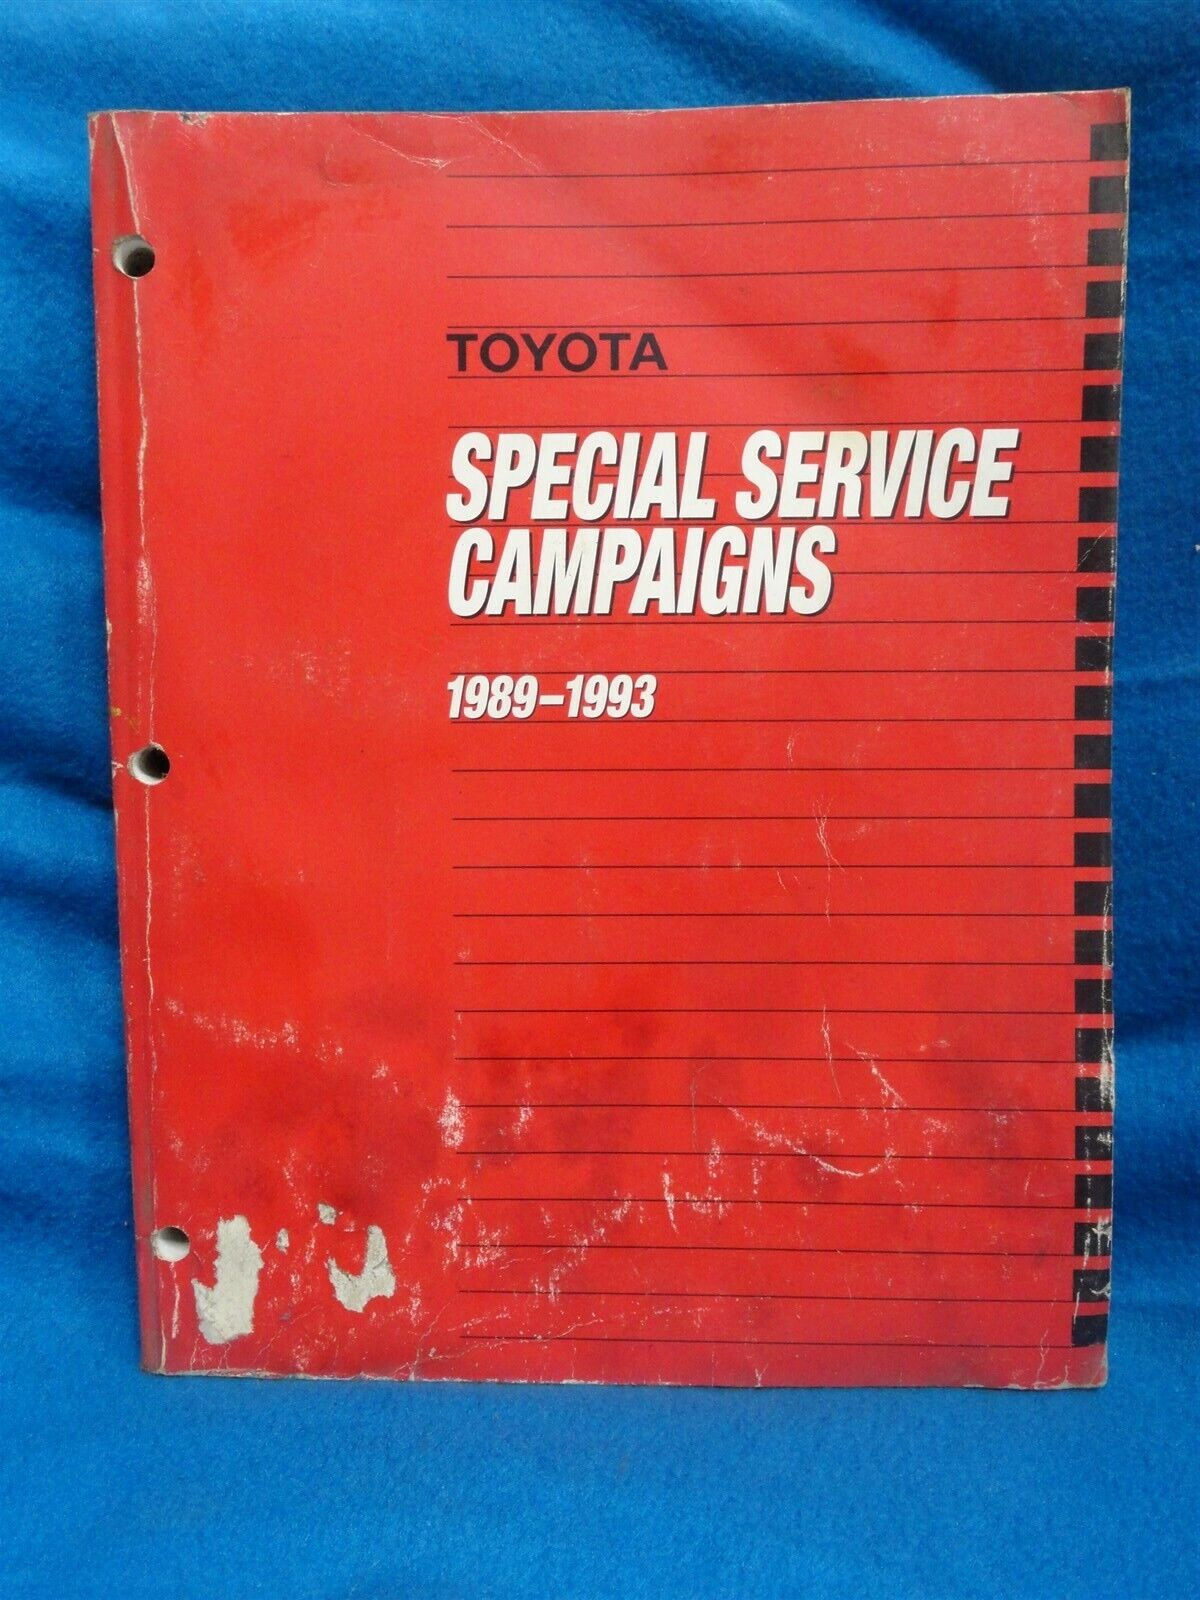 1989-1993 - Toyota ALL MODELS - FACTORY Special Service CAMPAIGNS - OEM ORIGINAL